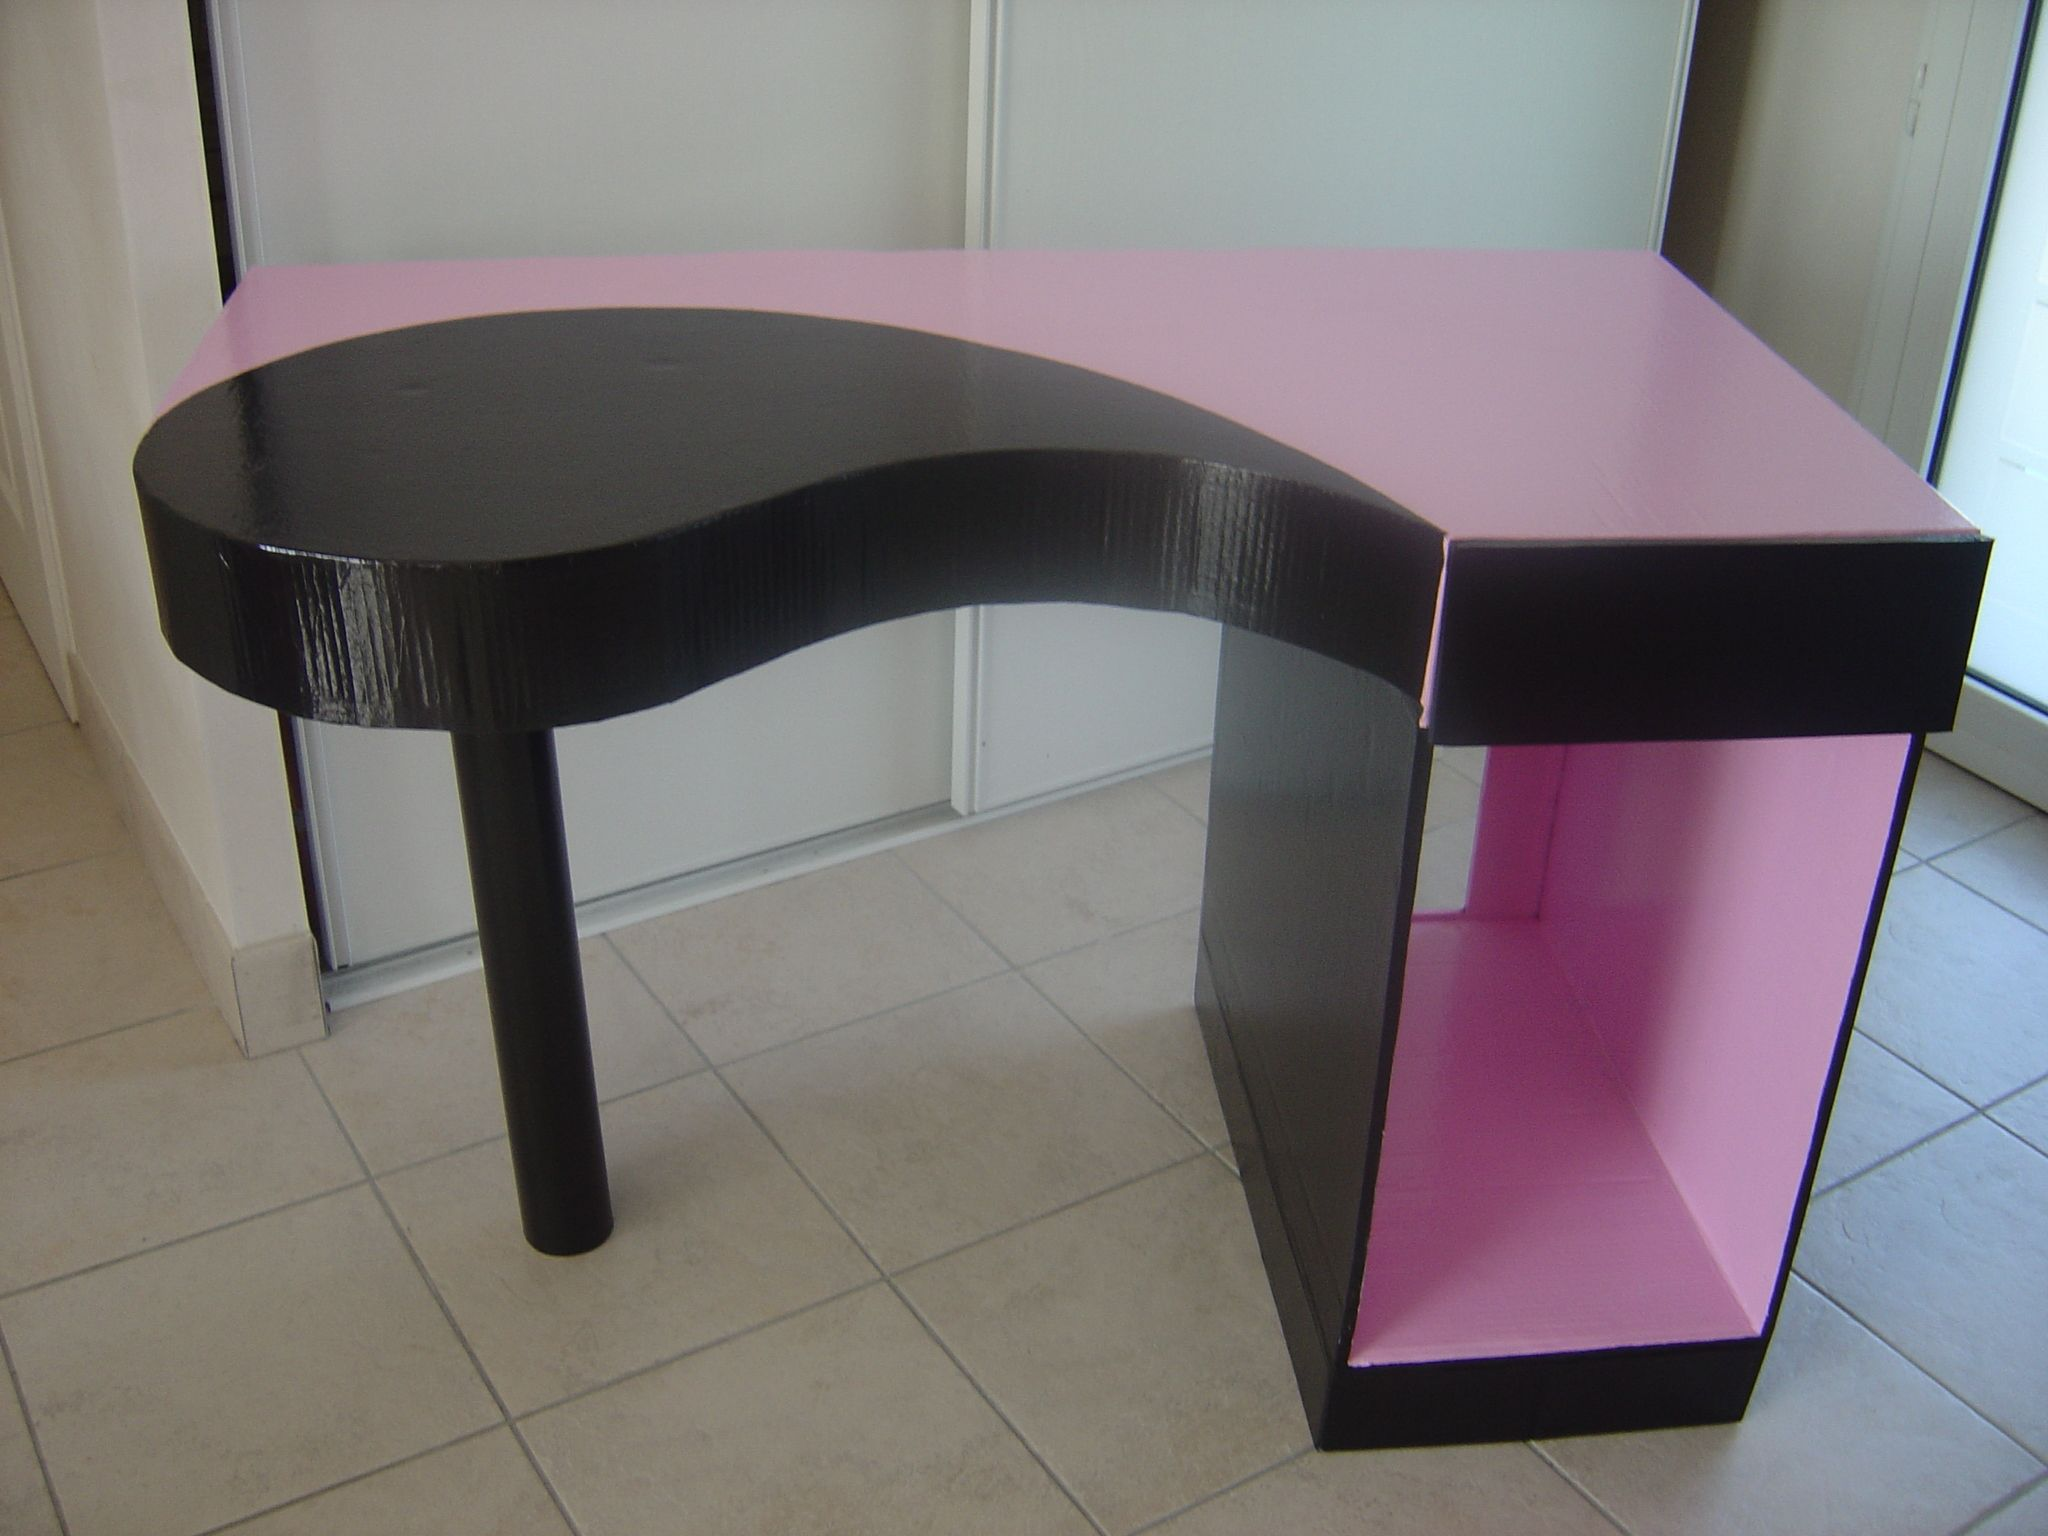 tutoriel fabriquer un bureau en carton cr ations en carton cartonnage meuble carton. Black Bedroom Furniture Sets. Home Design Ideas